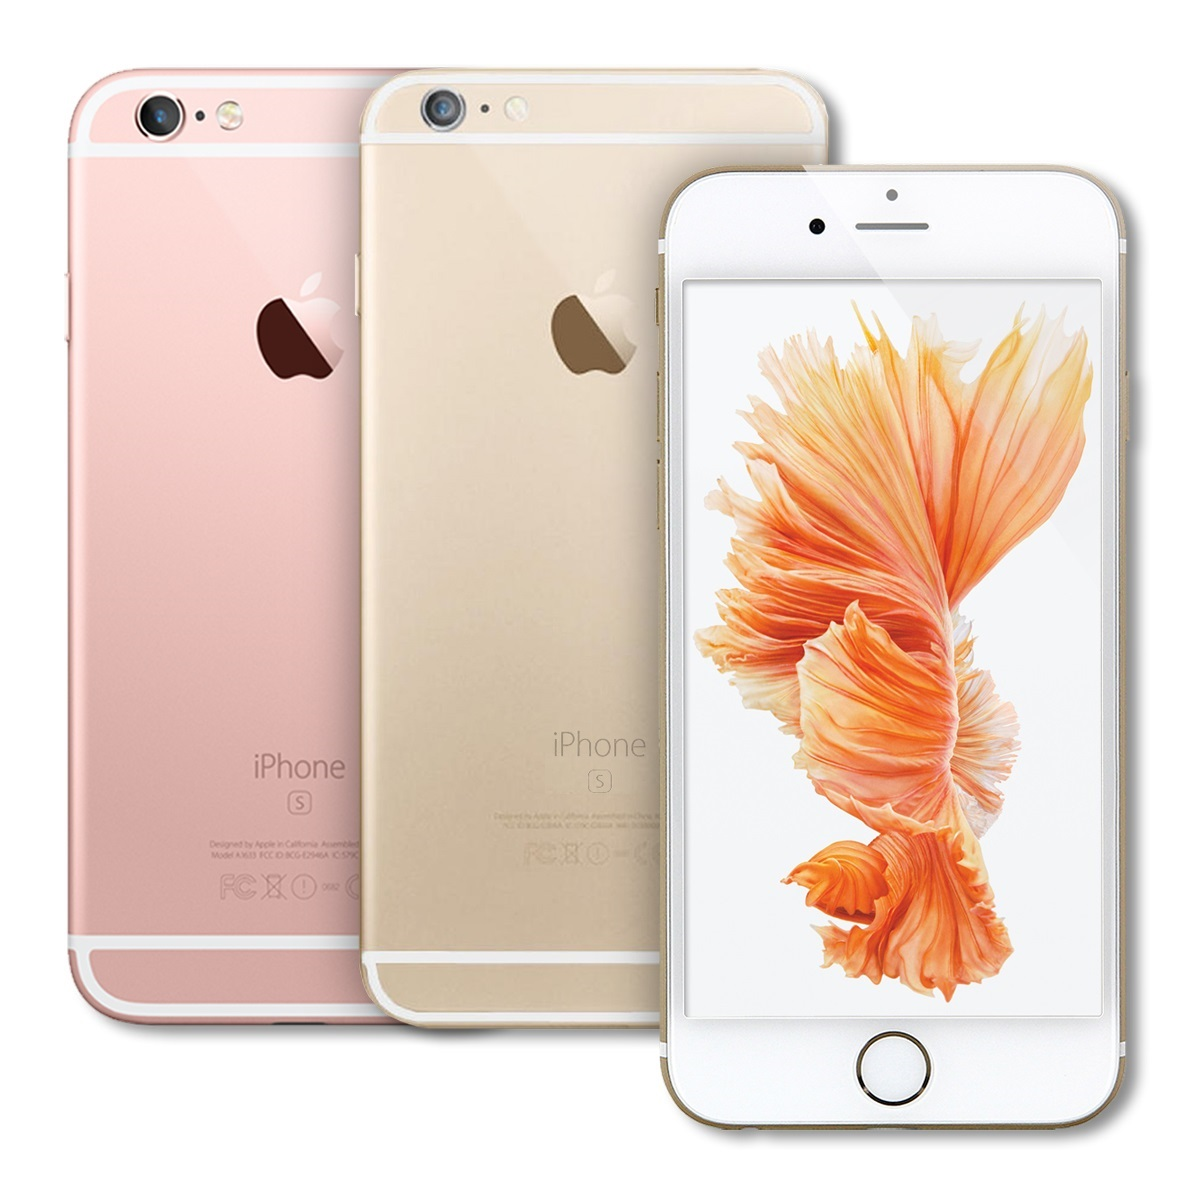 apple iphone 6s 32gb smartphone unlocked a1688 sprint t. Black Bedroom Furniture Sets. Home Design Ideas